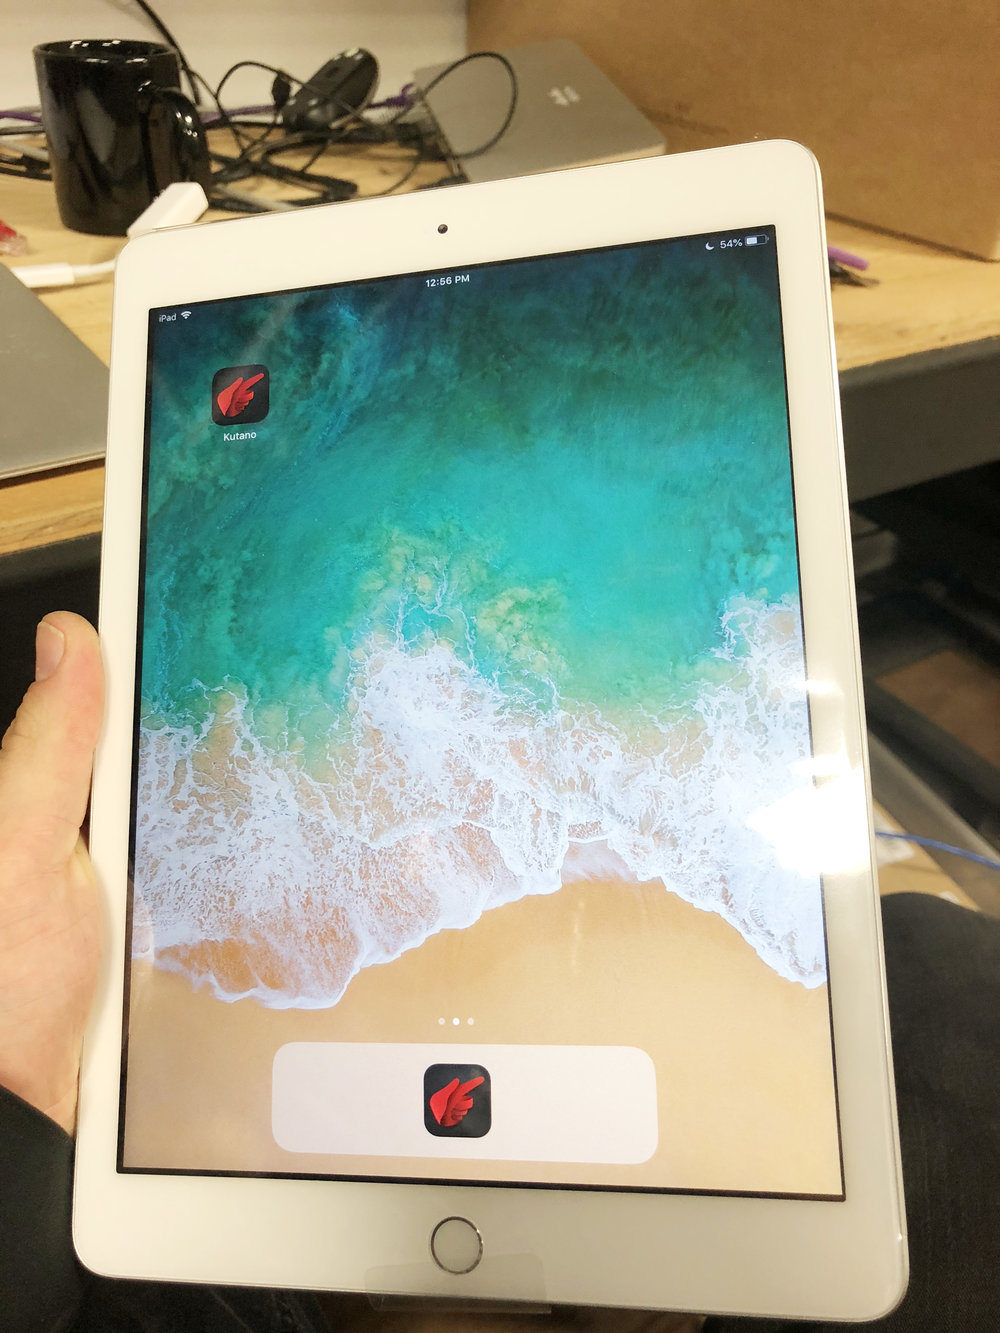 An iPad, that forms the control touchpoint of our room systems, is configured in staging. Here, you can see the Kutano app installed on the iPad.